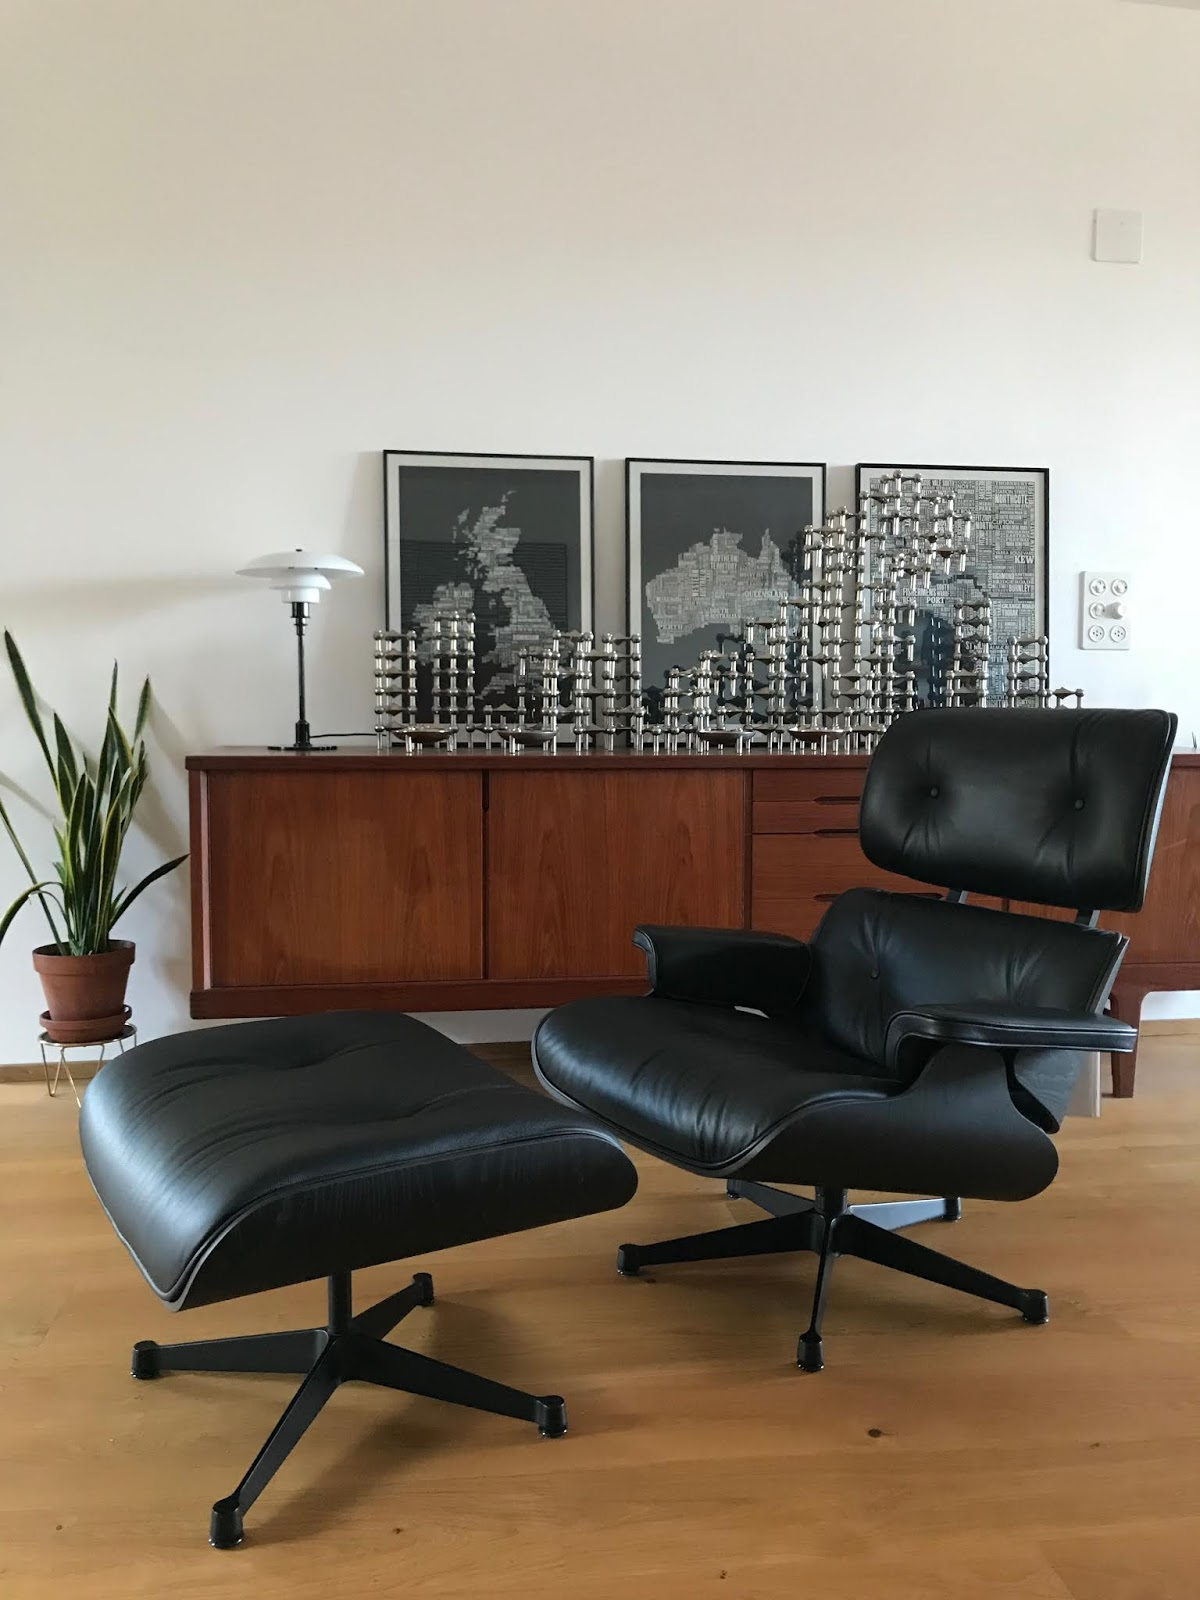 Vitra Möbel Bern Bellbird Vintage Blog Vitra Eames Lounge Chair Black Edition